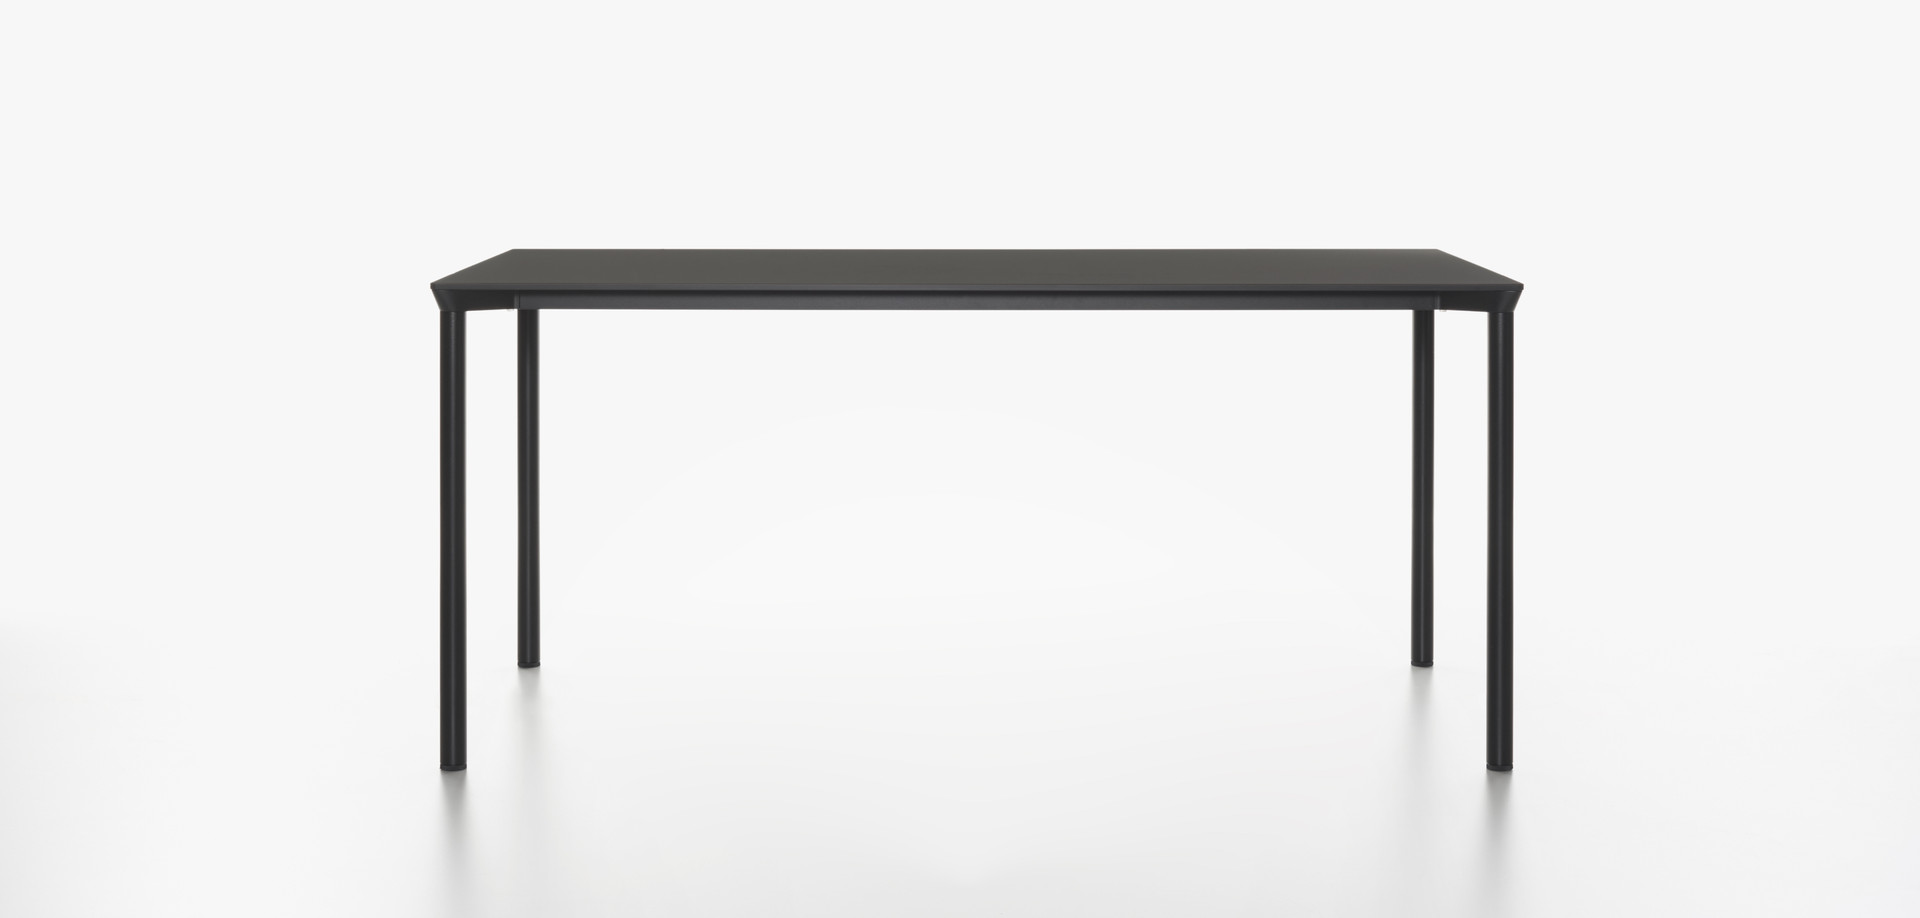 Plank - MONZA table rectangular, black HPL table top, black aluminum legs